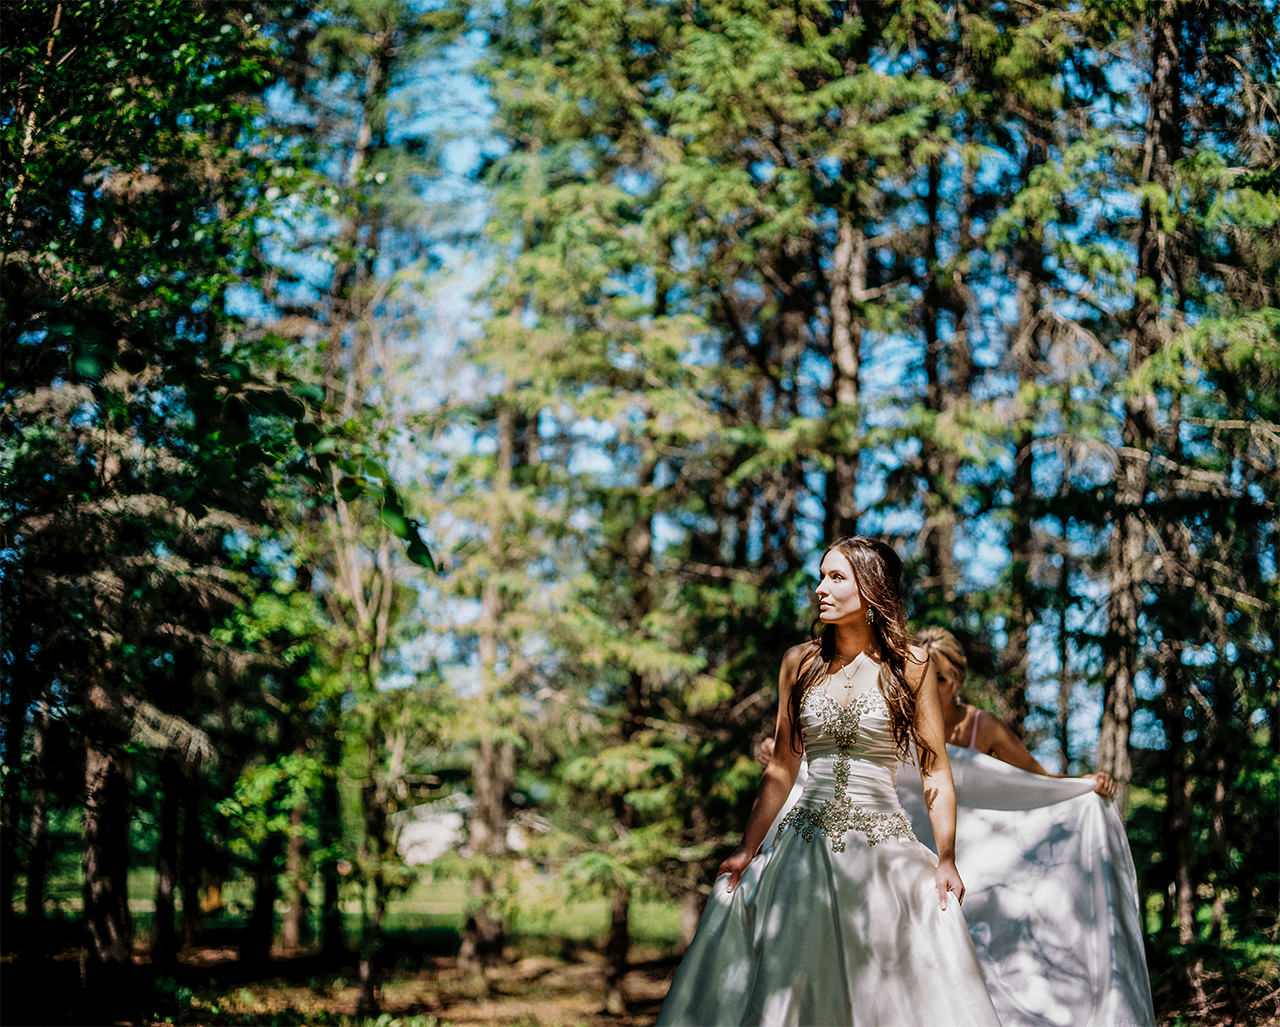 Kirstin+Edward|Married-Wedding-Grotto-CooksCreek-Manitoba-EvergreenVillage-ClassyWedding-HighEndWedding-LuxuryWedding-FineArtWedding-Winnipeg-WinnipegWeddingPhotographer-005.jpg